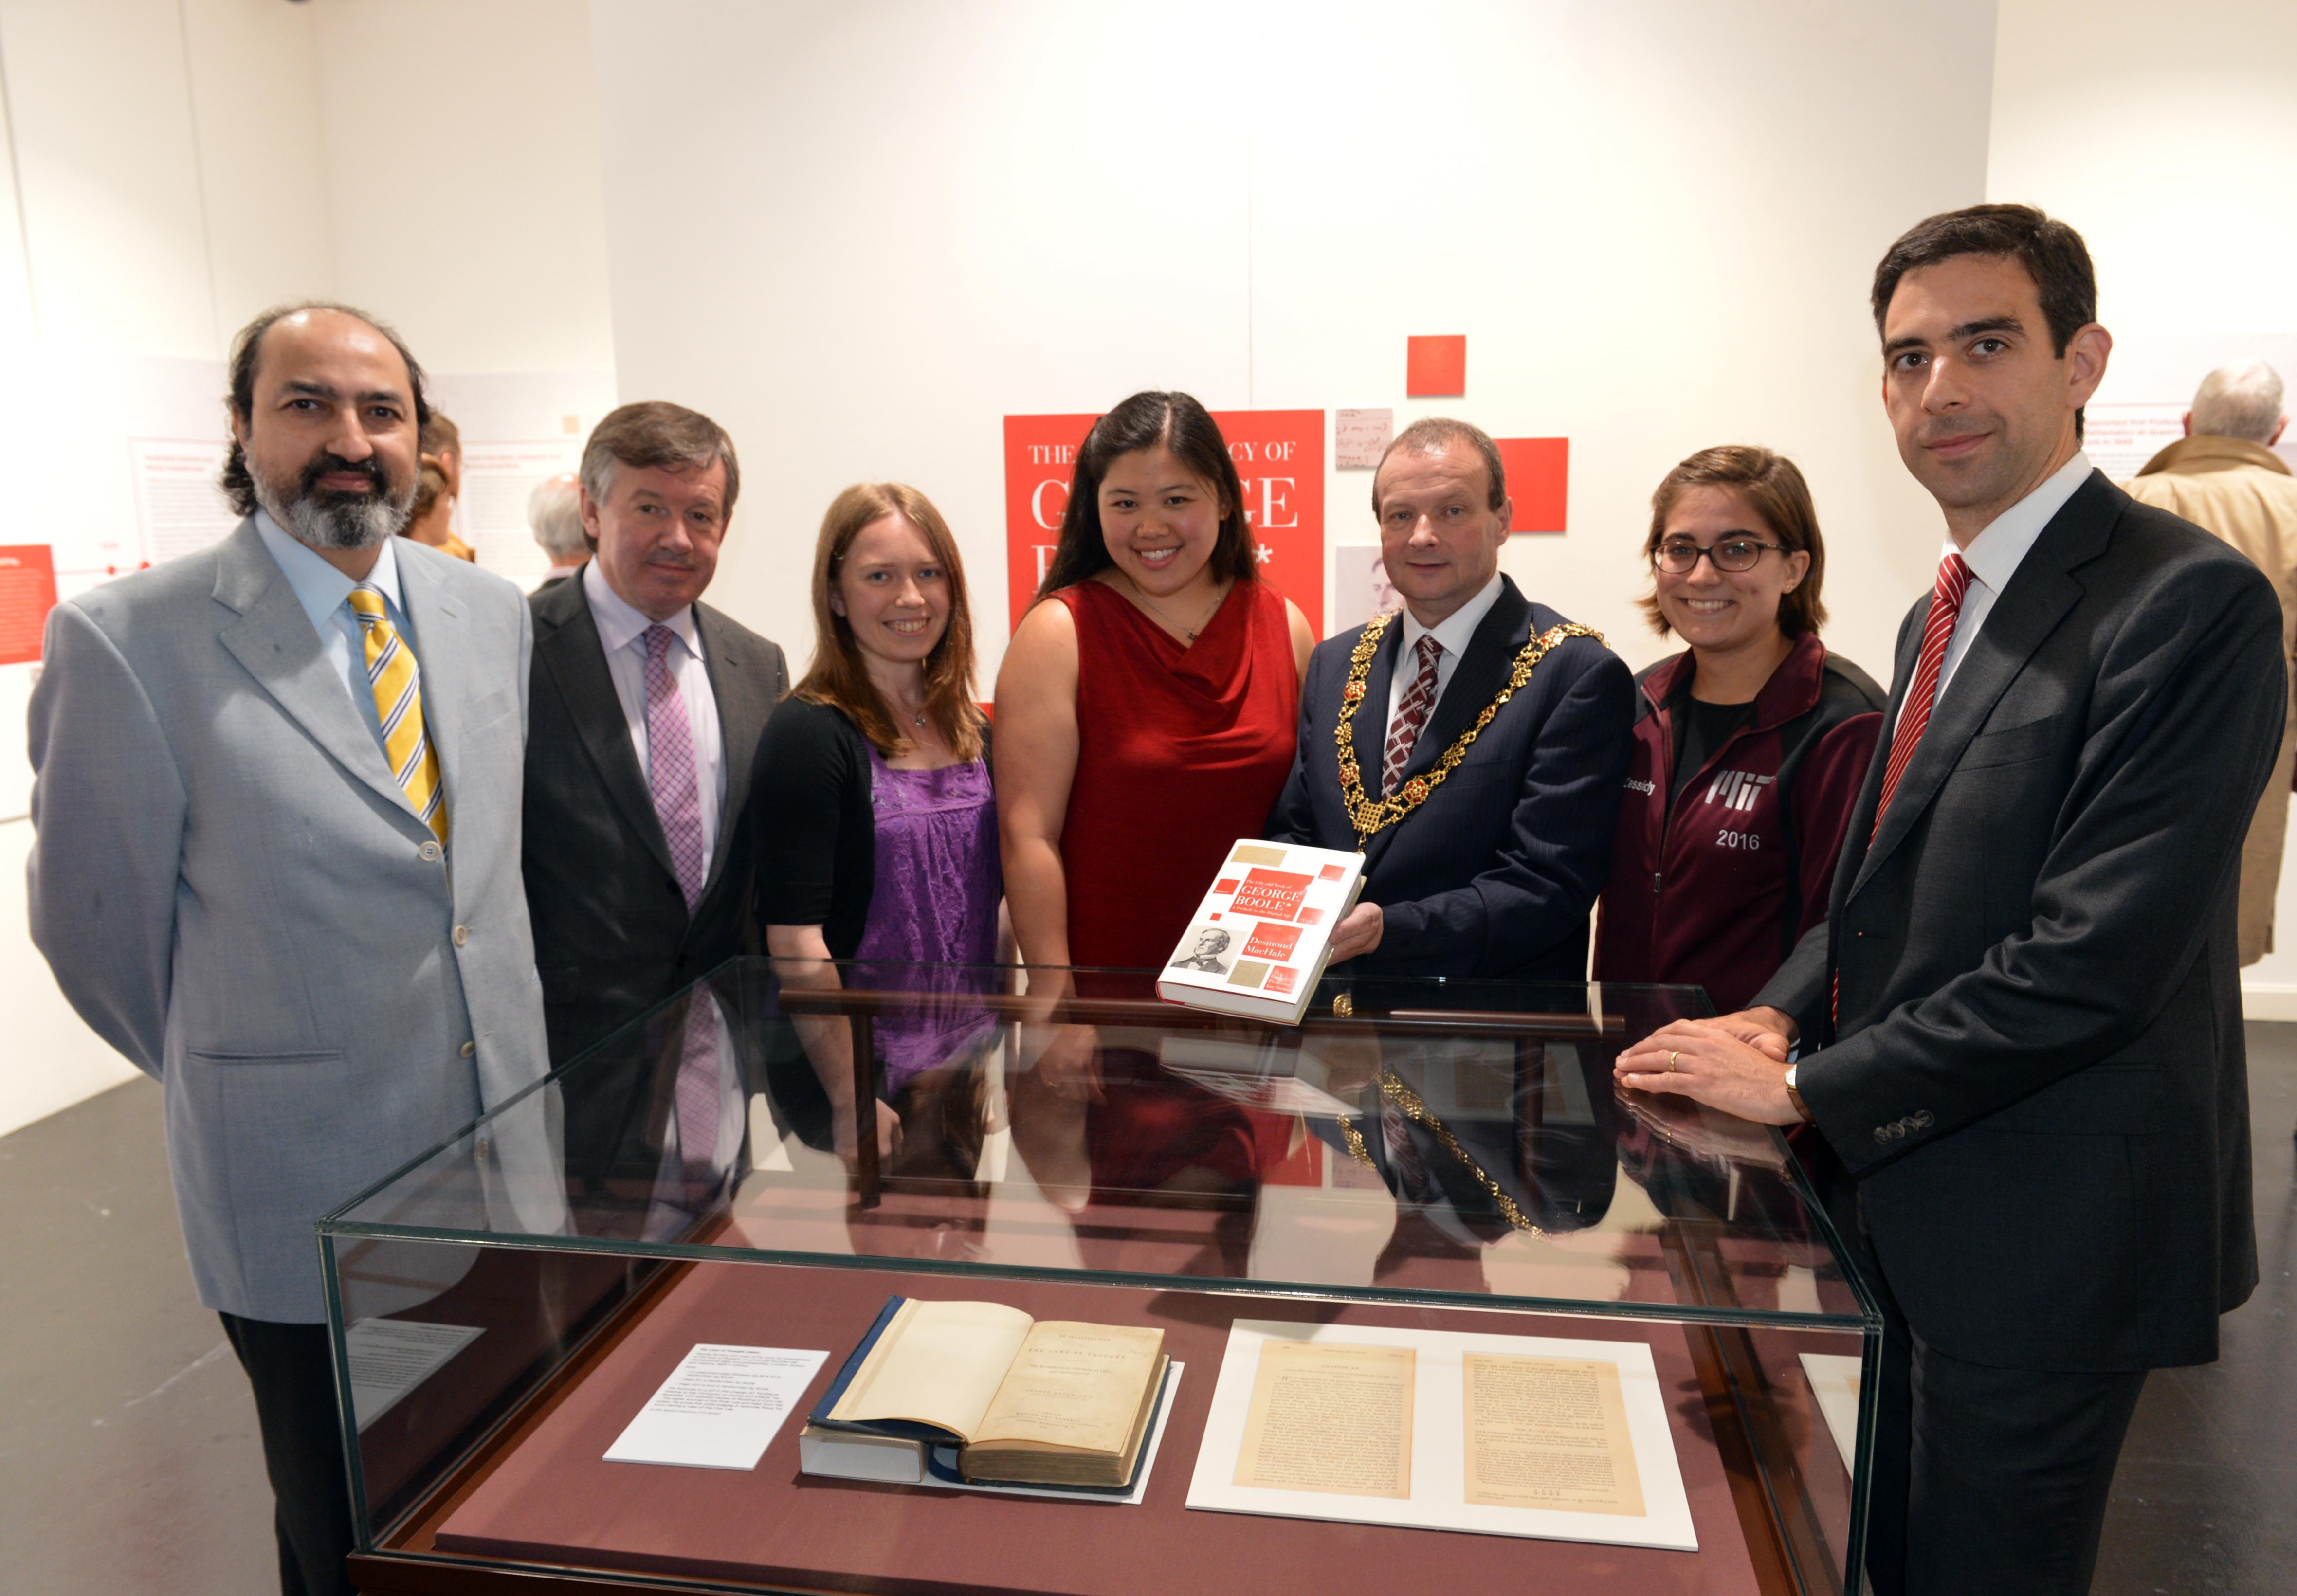 President of UCC Dr. Michael Murphy and Lord Mayor of Cork City Chris O'Leary speaking with MIT students Laura Standley, Grace Cassidy and Emily Yue, with Nabeel Riza (left) and DR padraig Cantillon-Murphy of UCC School of Engineering.